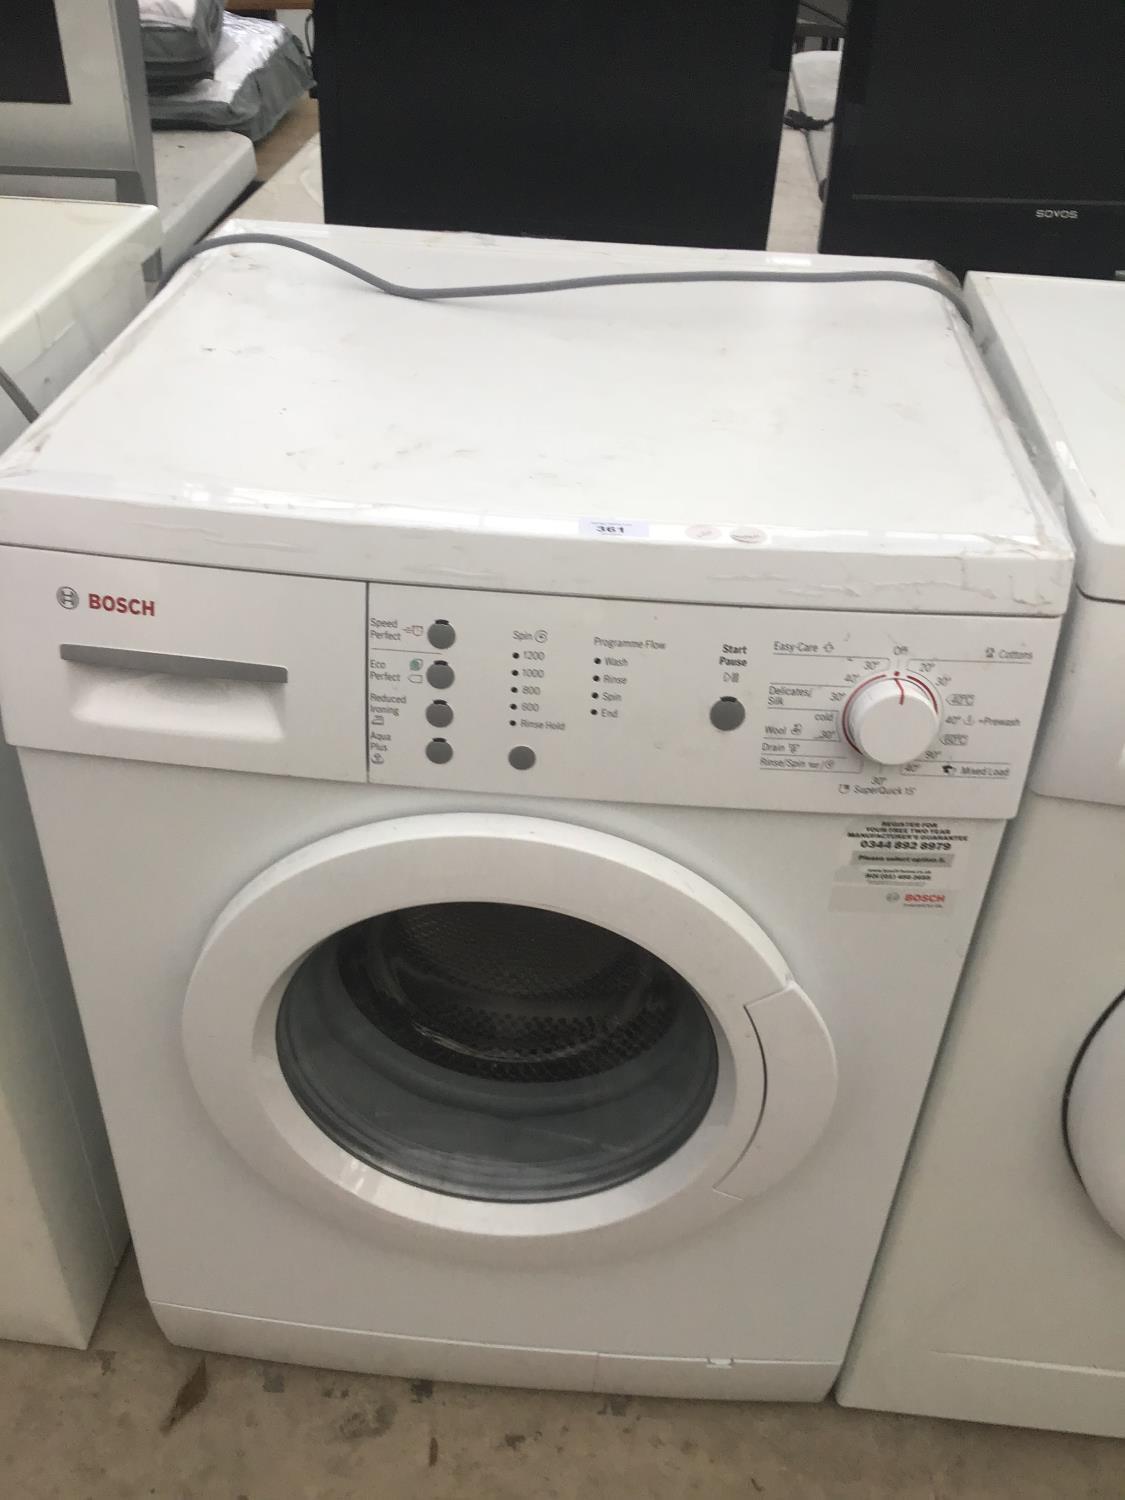 Lot 361 - A BOSCH WASHING MACHINE IN WORKING ORDER